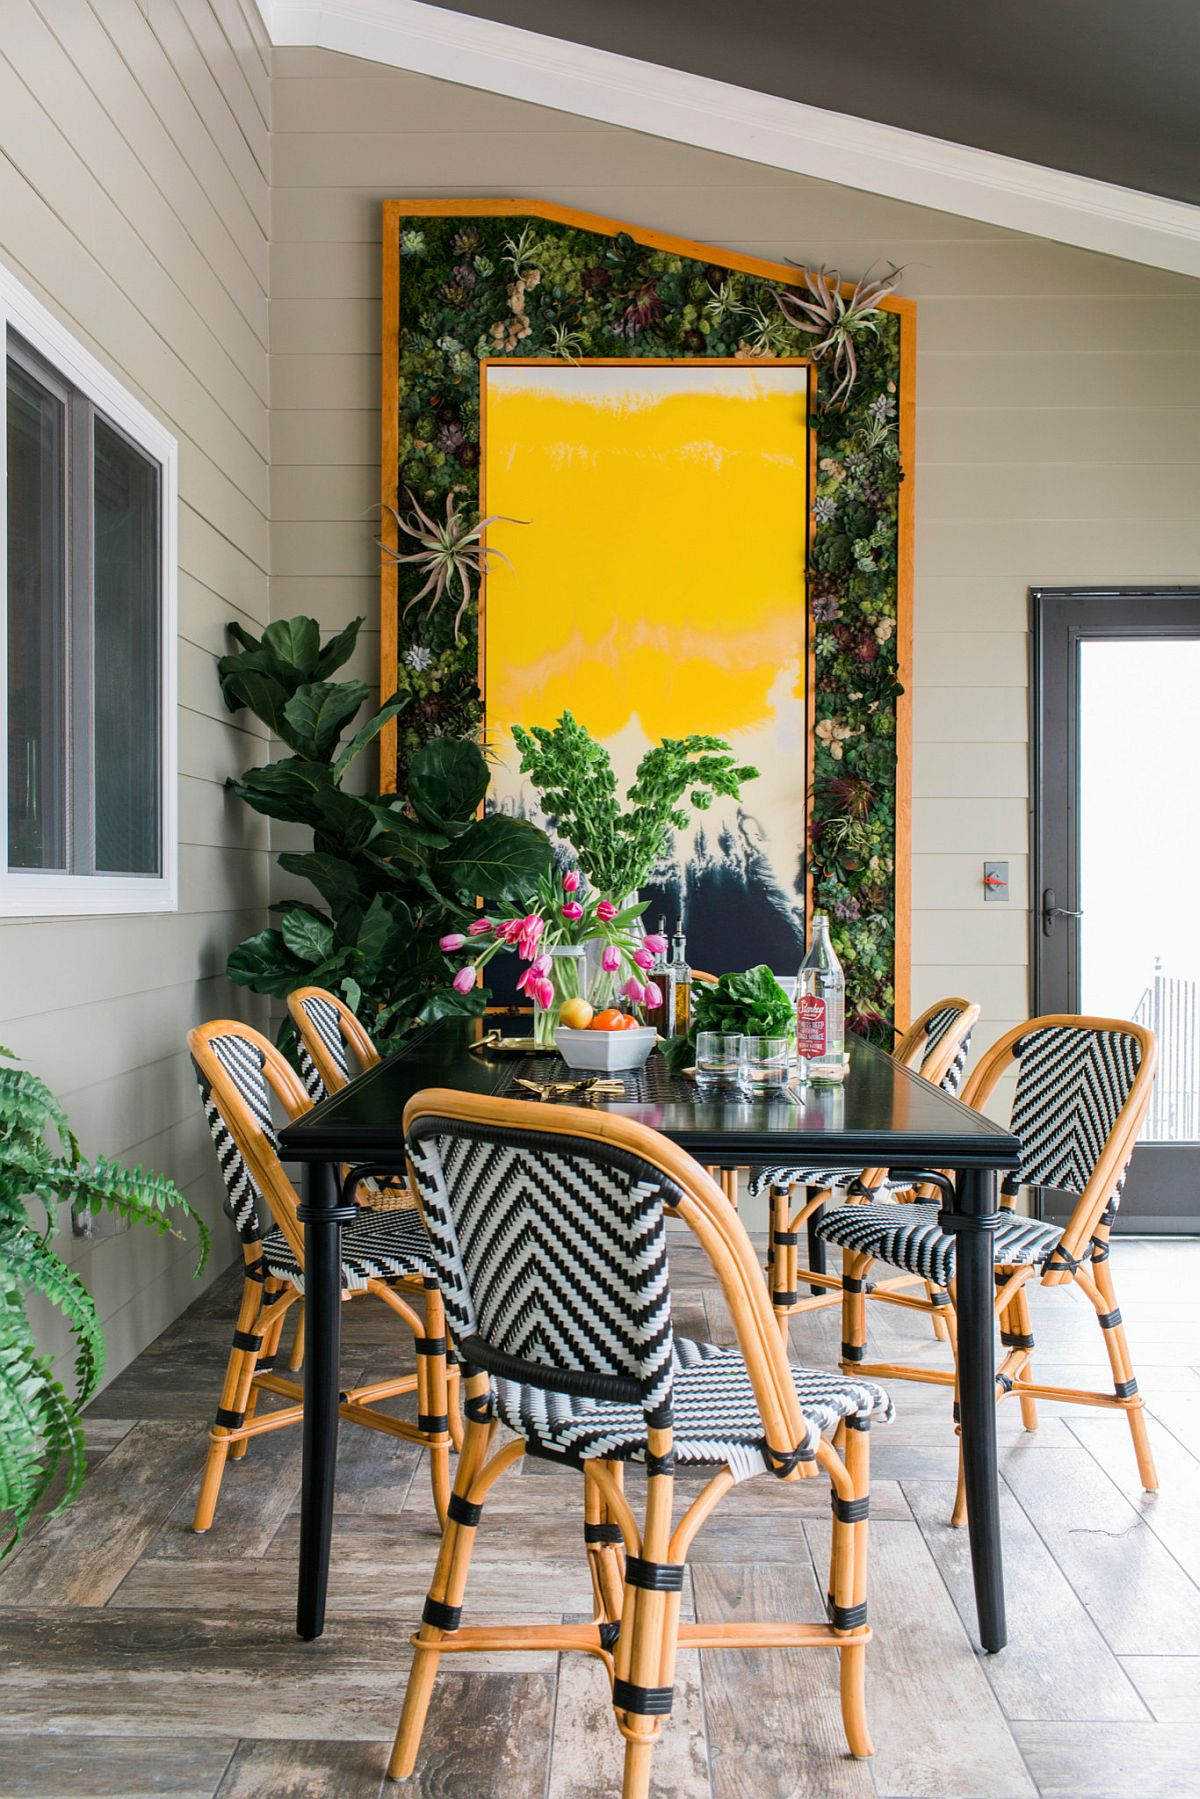 Combine-color-and-creativity-for-that-perfect-porch-dining-space-where-your-whole-family-feels-welcome-16783